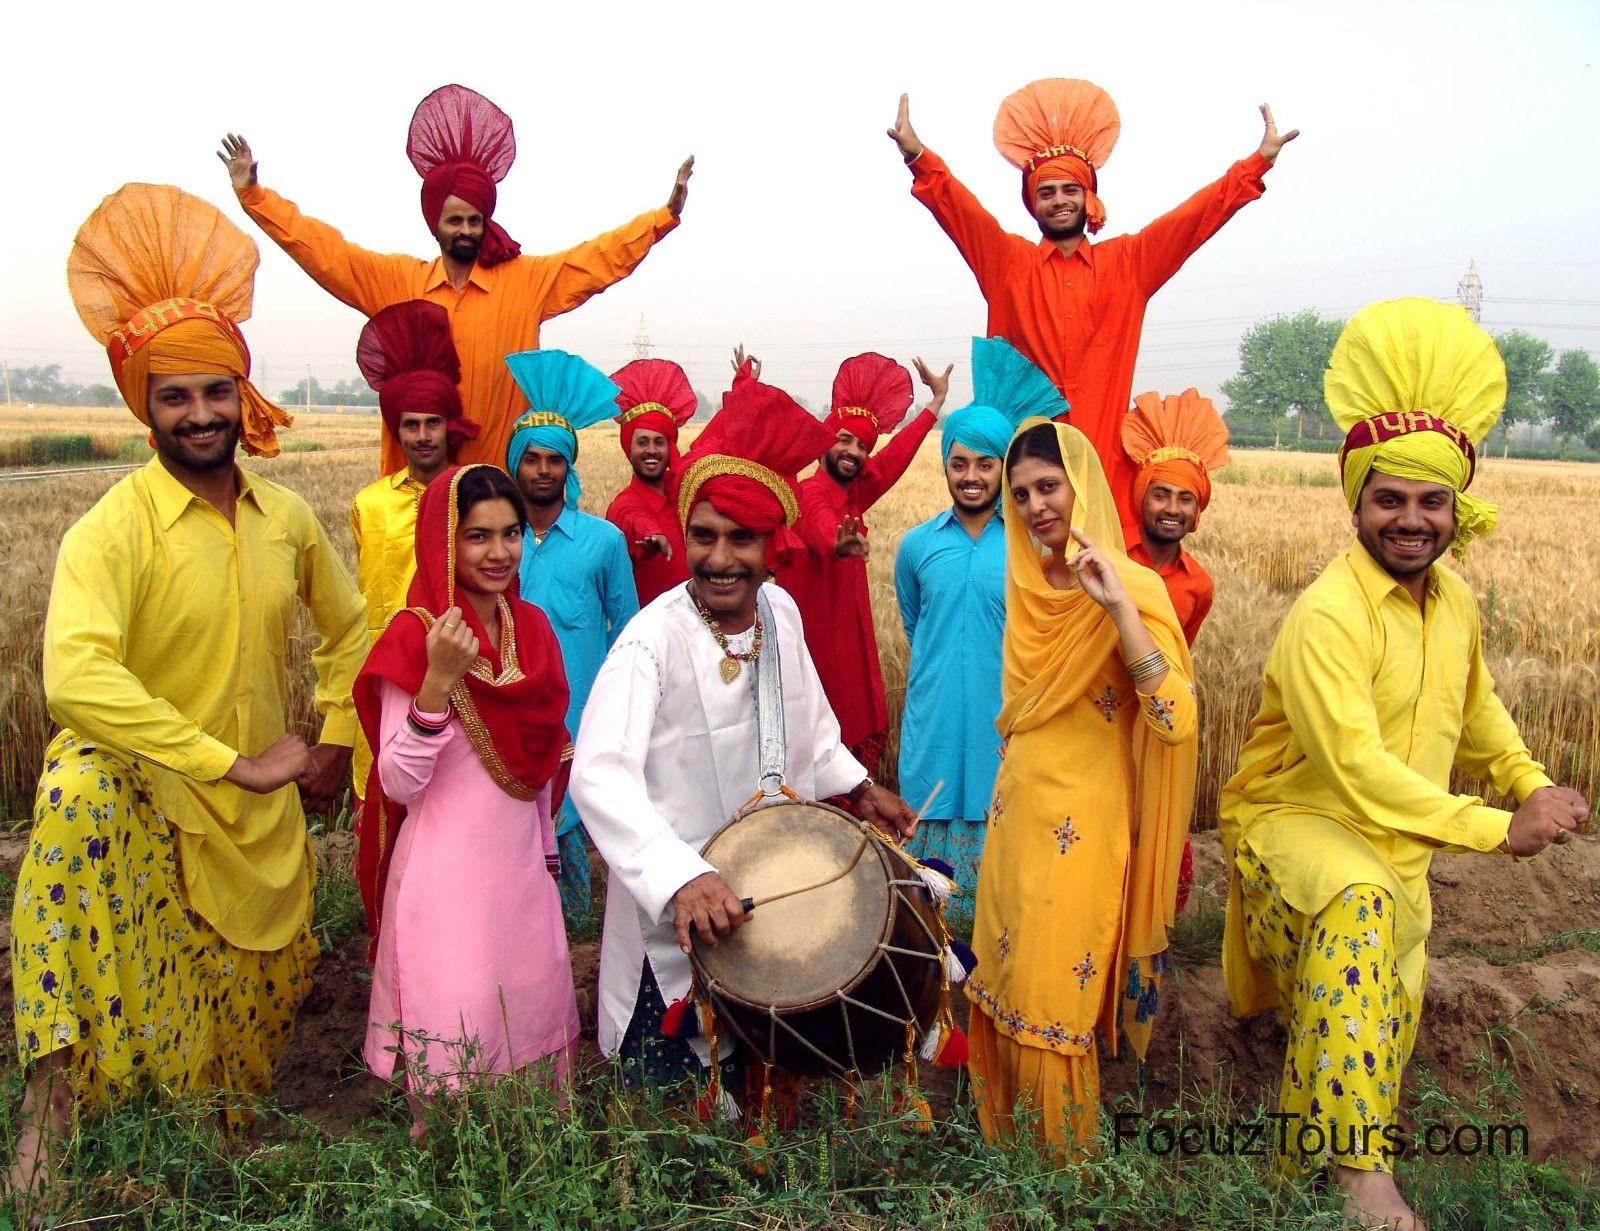 tourism in punjab Punjab tourism department latest breaking news, pictures, videos, and special reports from the economic times punjab tourism department blogs, comments and archive.